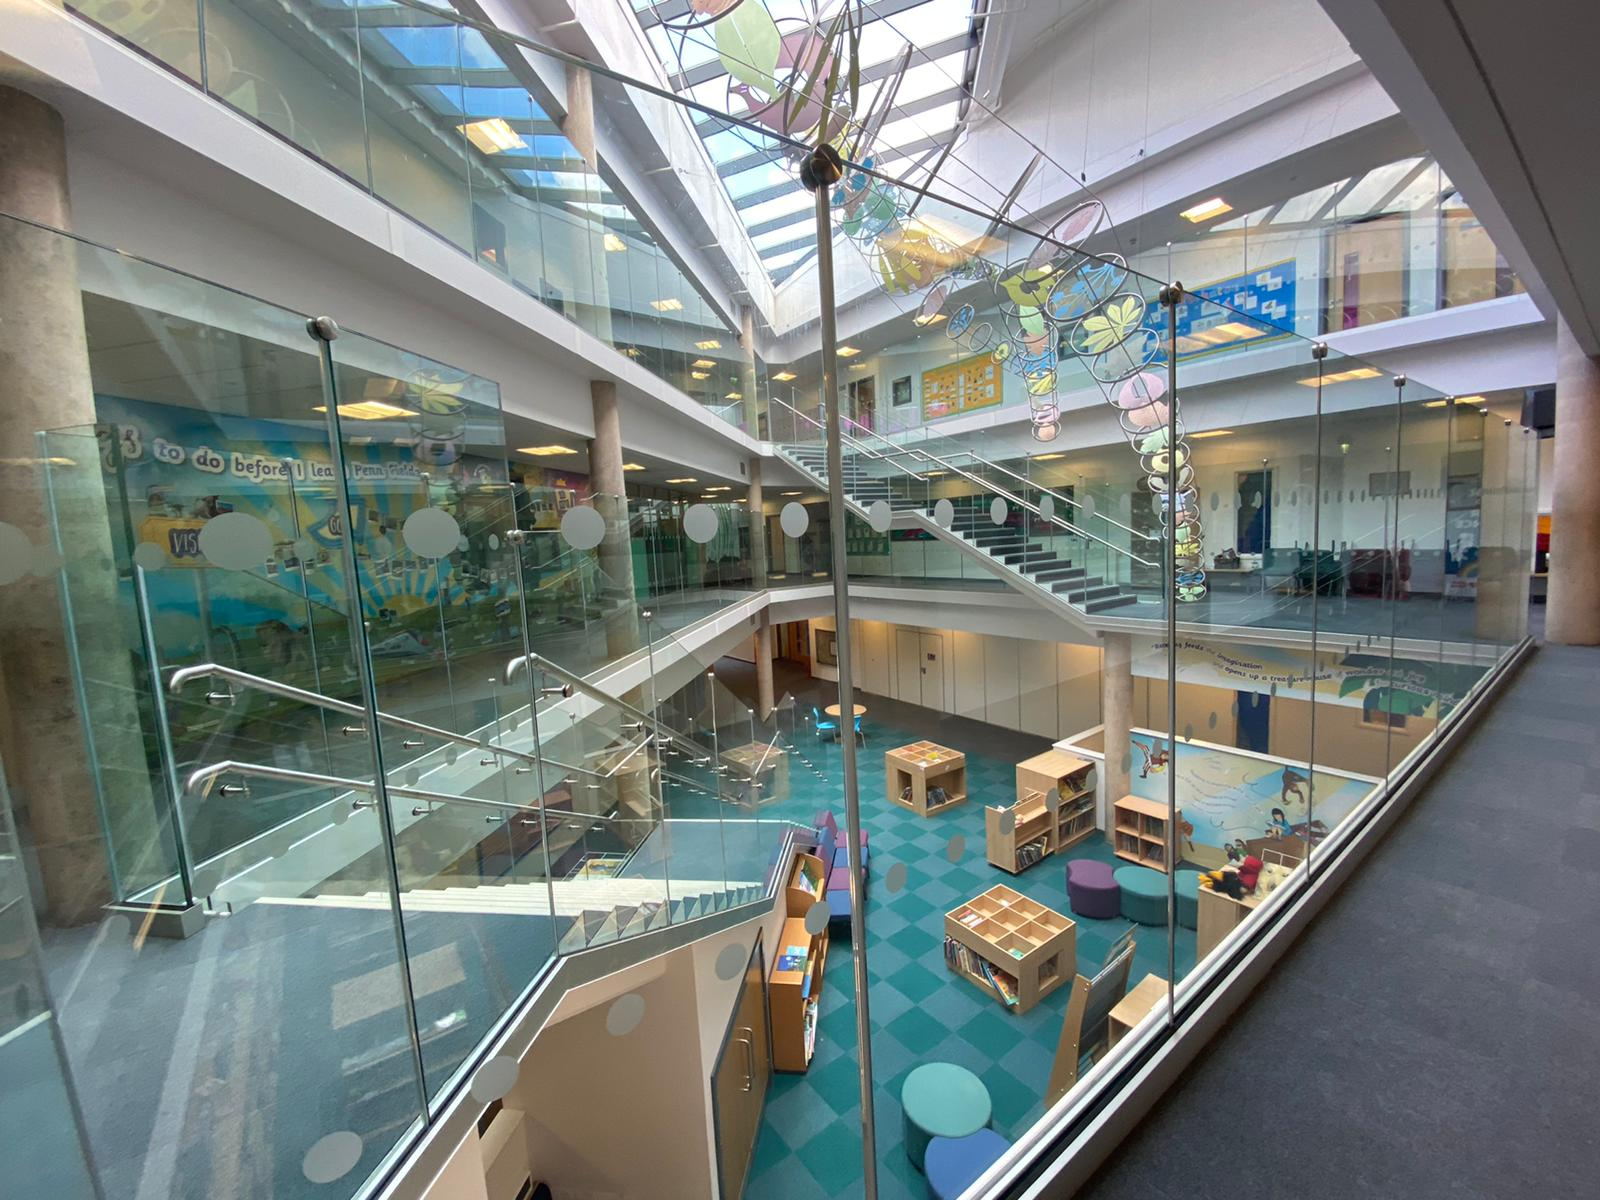 GR were asked to design and install a new glass balustrading solution for this Midlands based School.